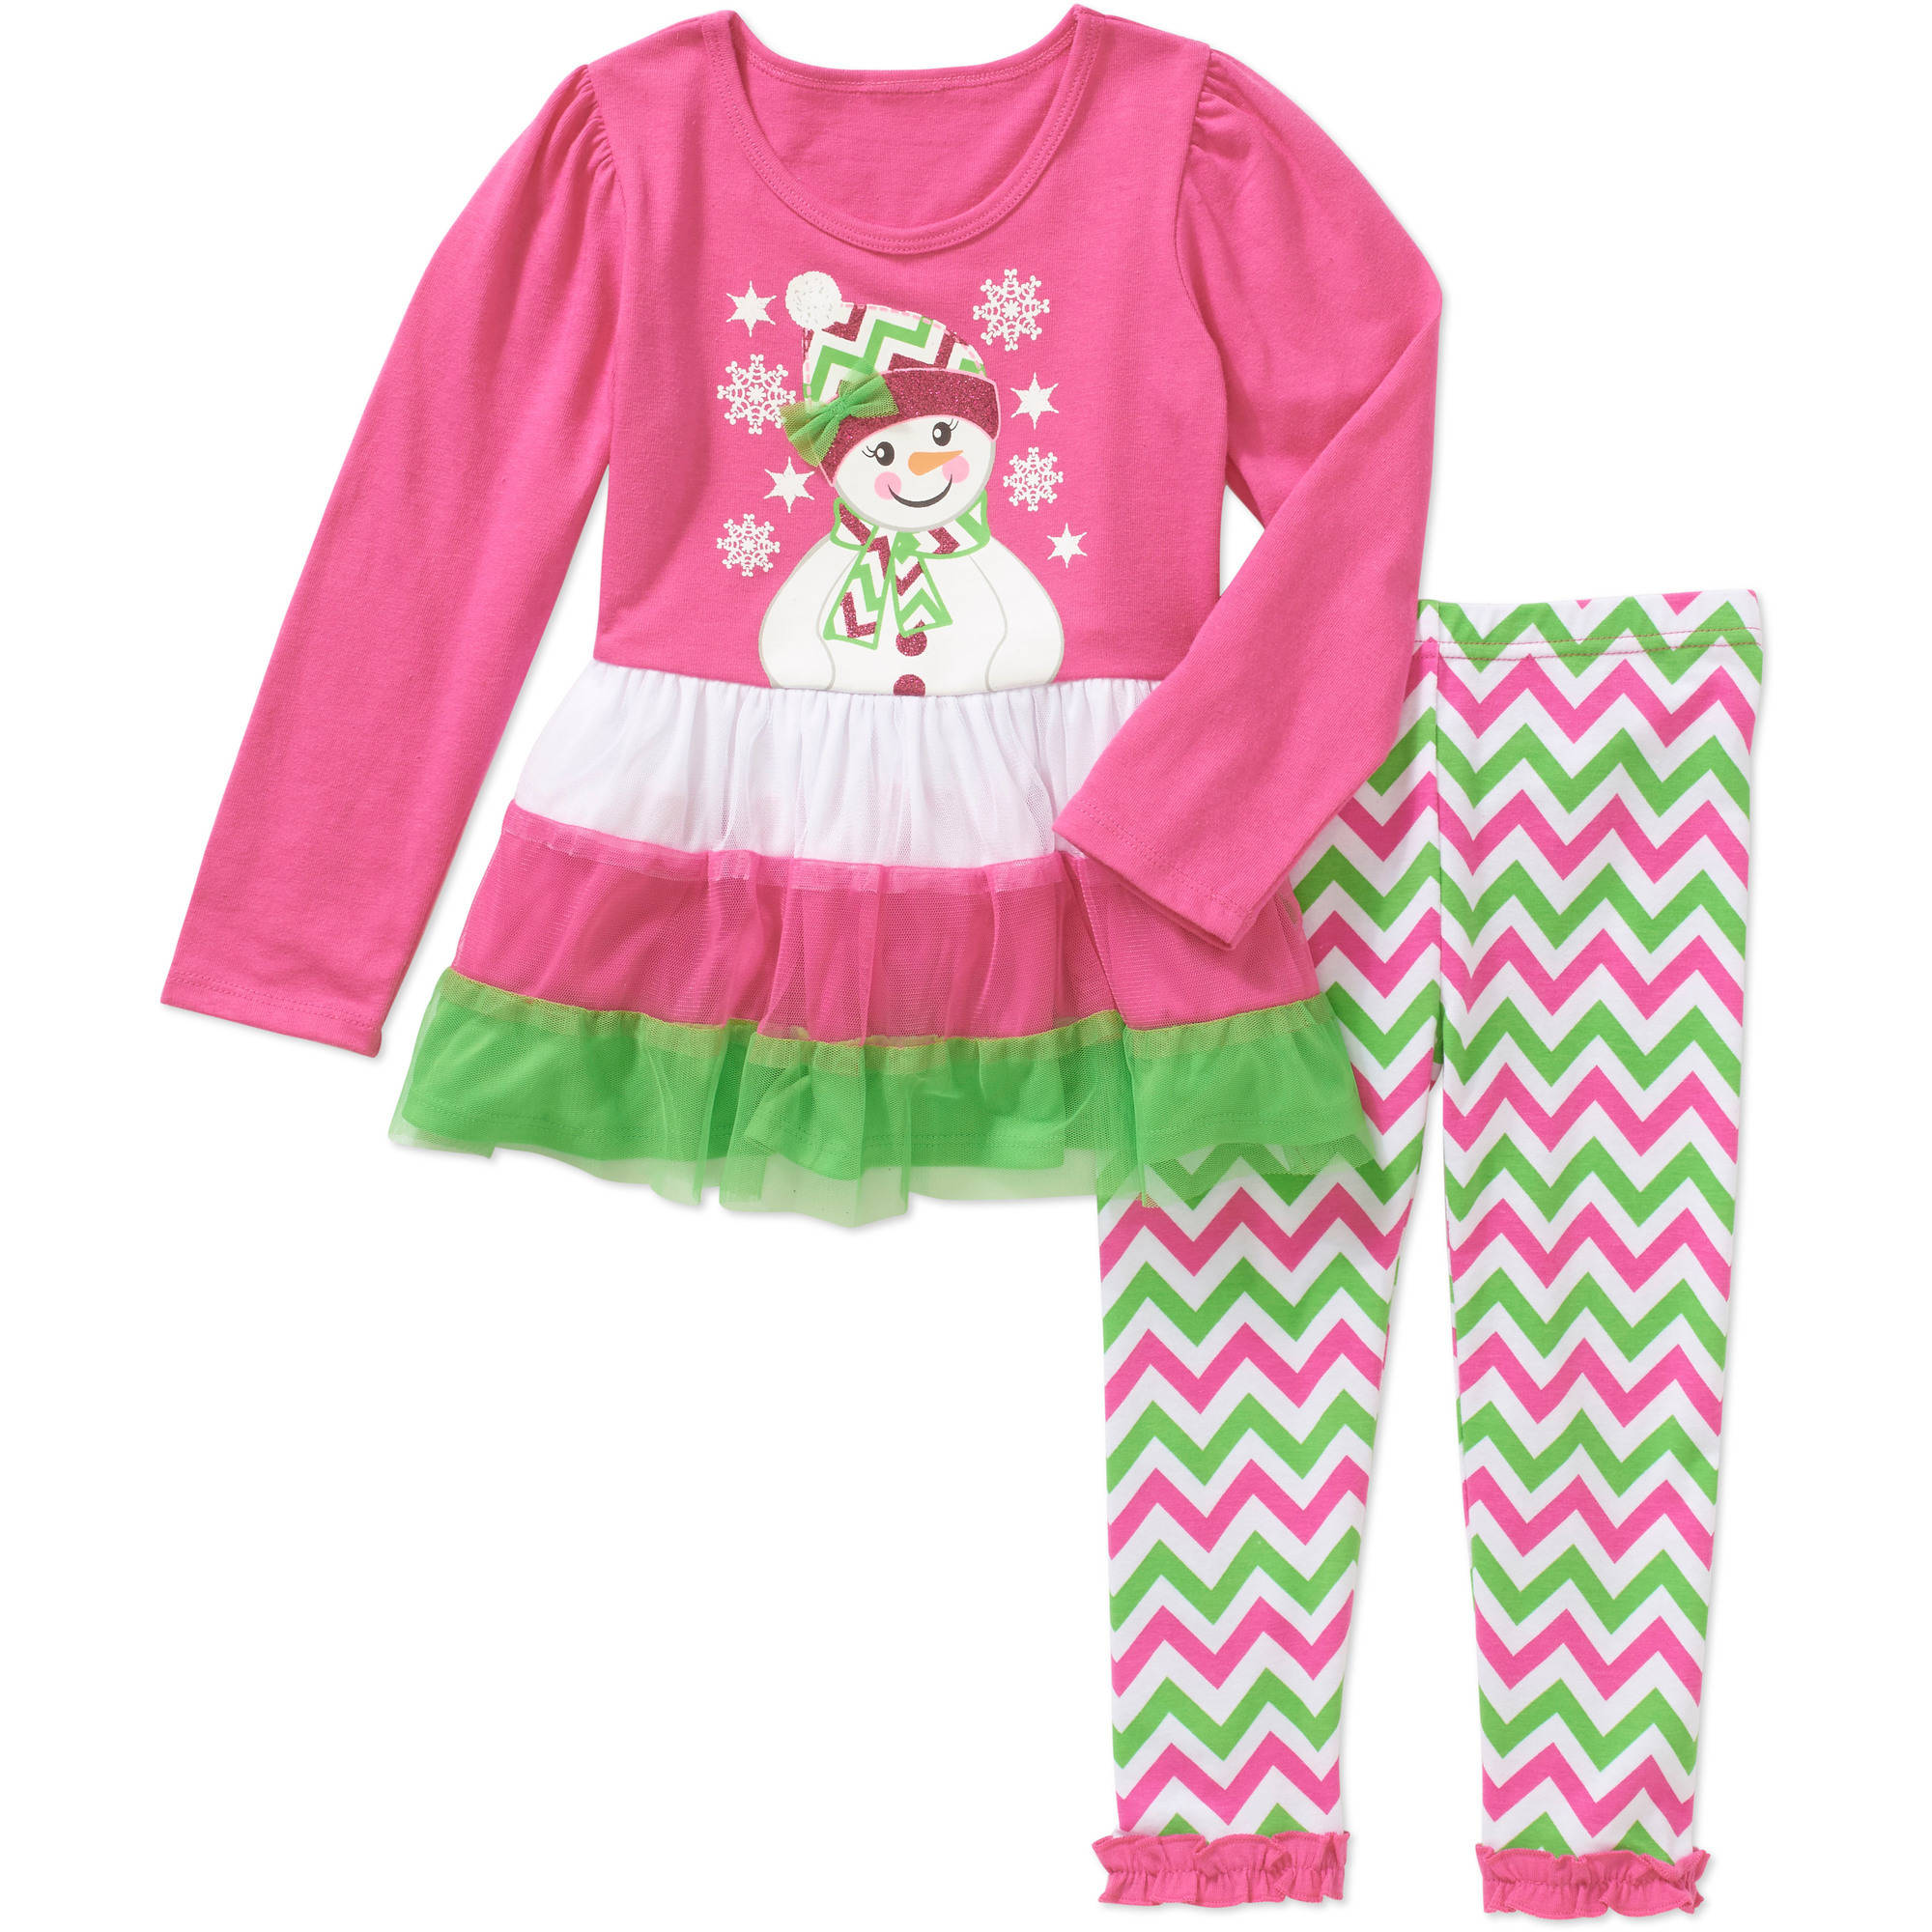 Healthtex Toddler Girls' Holiday Long Sleeve Top & Leggings Outfit